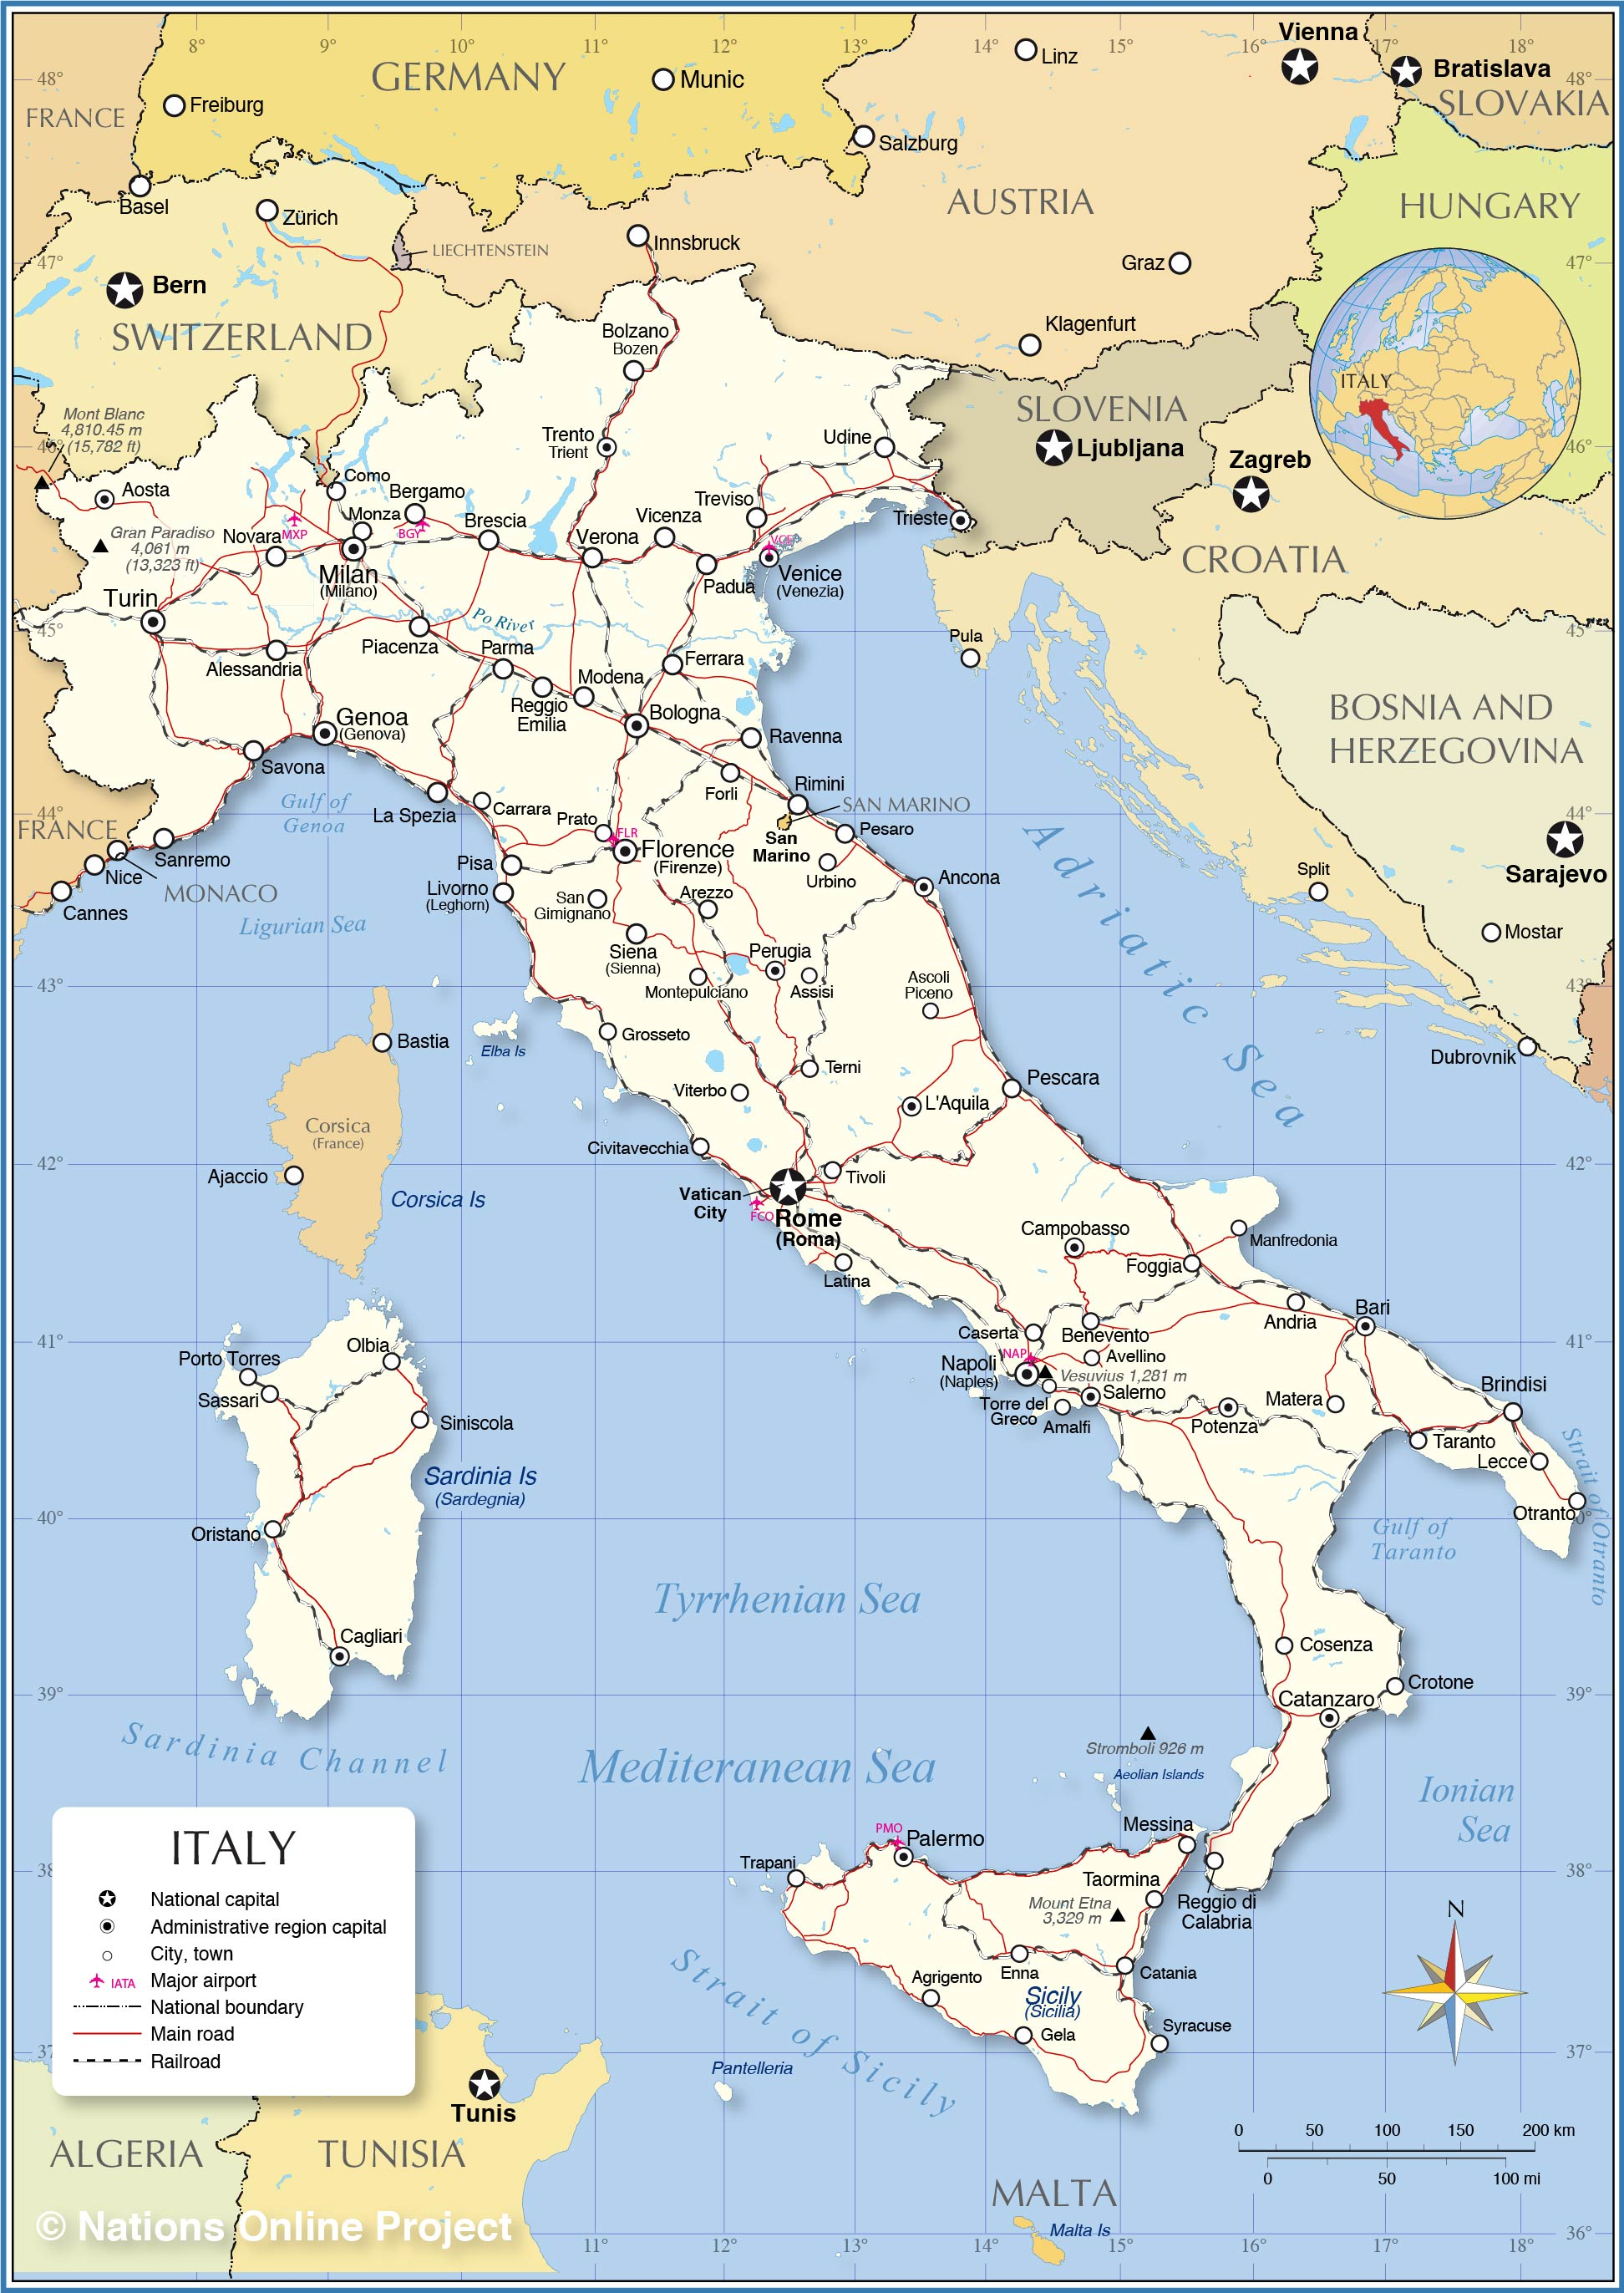 Political Map of Italy - Nations Online Project on map of croatia, map of turkey, map of czech republic, turin italy, florence italy, map of amalfi coast, map of roman empire, map of slovenia, palermo italy, rome italy, map of venice, map of pompeii, map of southern europe, map of tunisia, bari italy, milan italy, italy flag, map of hungary, map of tuscany, modena italy, italy weather, map of malta, map of mediterranean, map of norway, map of cyprus, bologna italy, genova italy, venice italy, map of yemen, verona italy, italy travel, map of sweden, lake como italy, map of united states, naples italy, italy tourism, pisa italy,